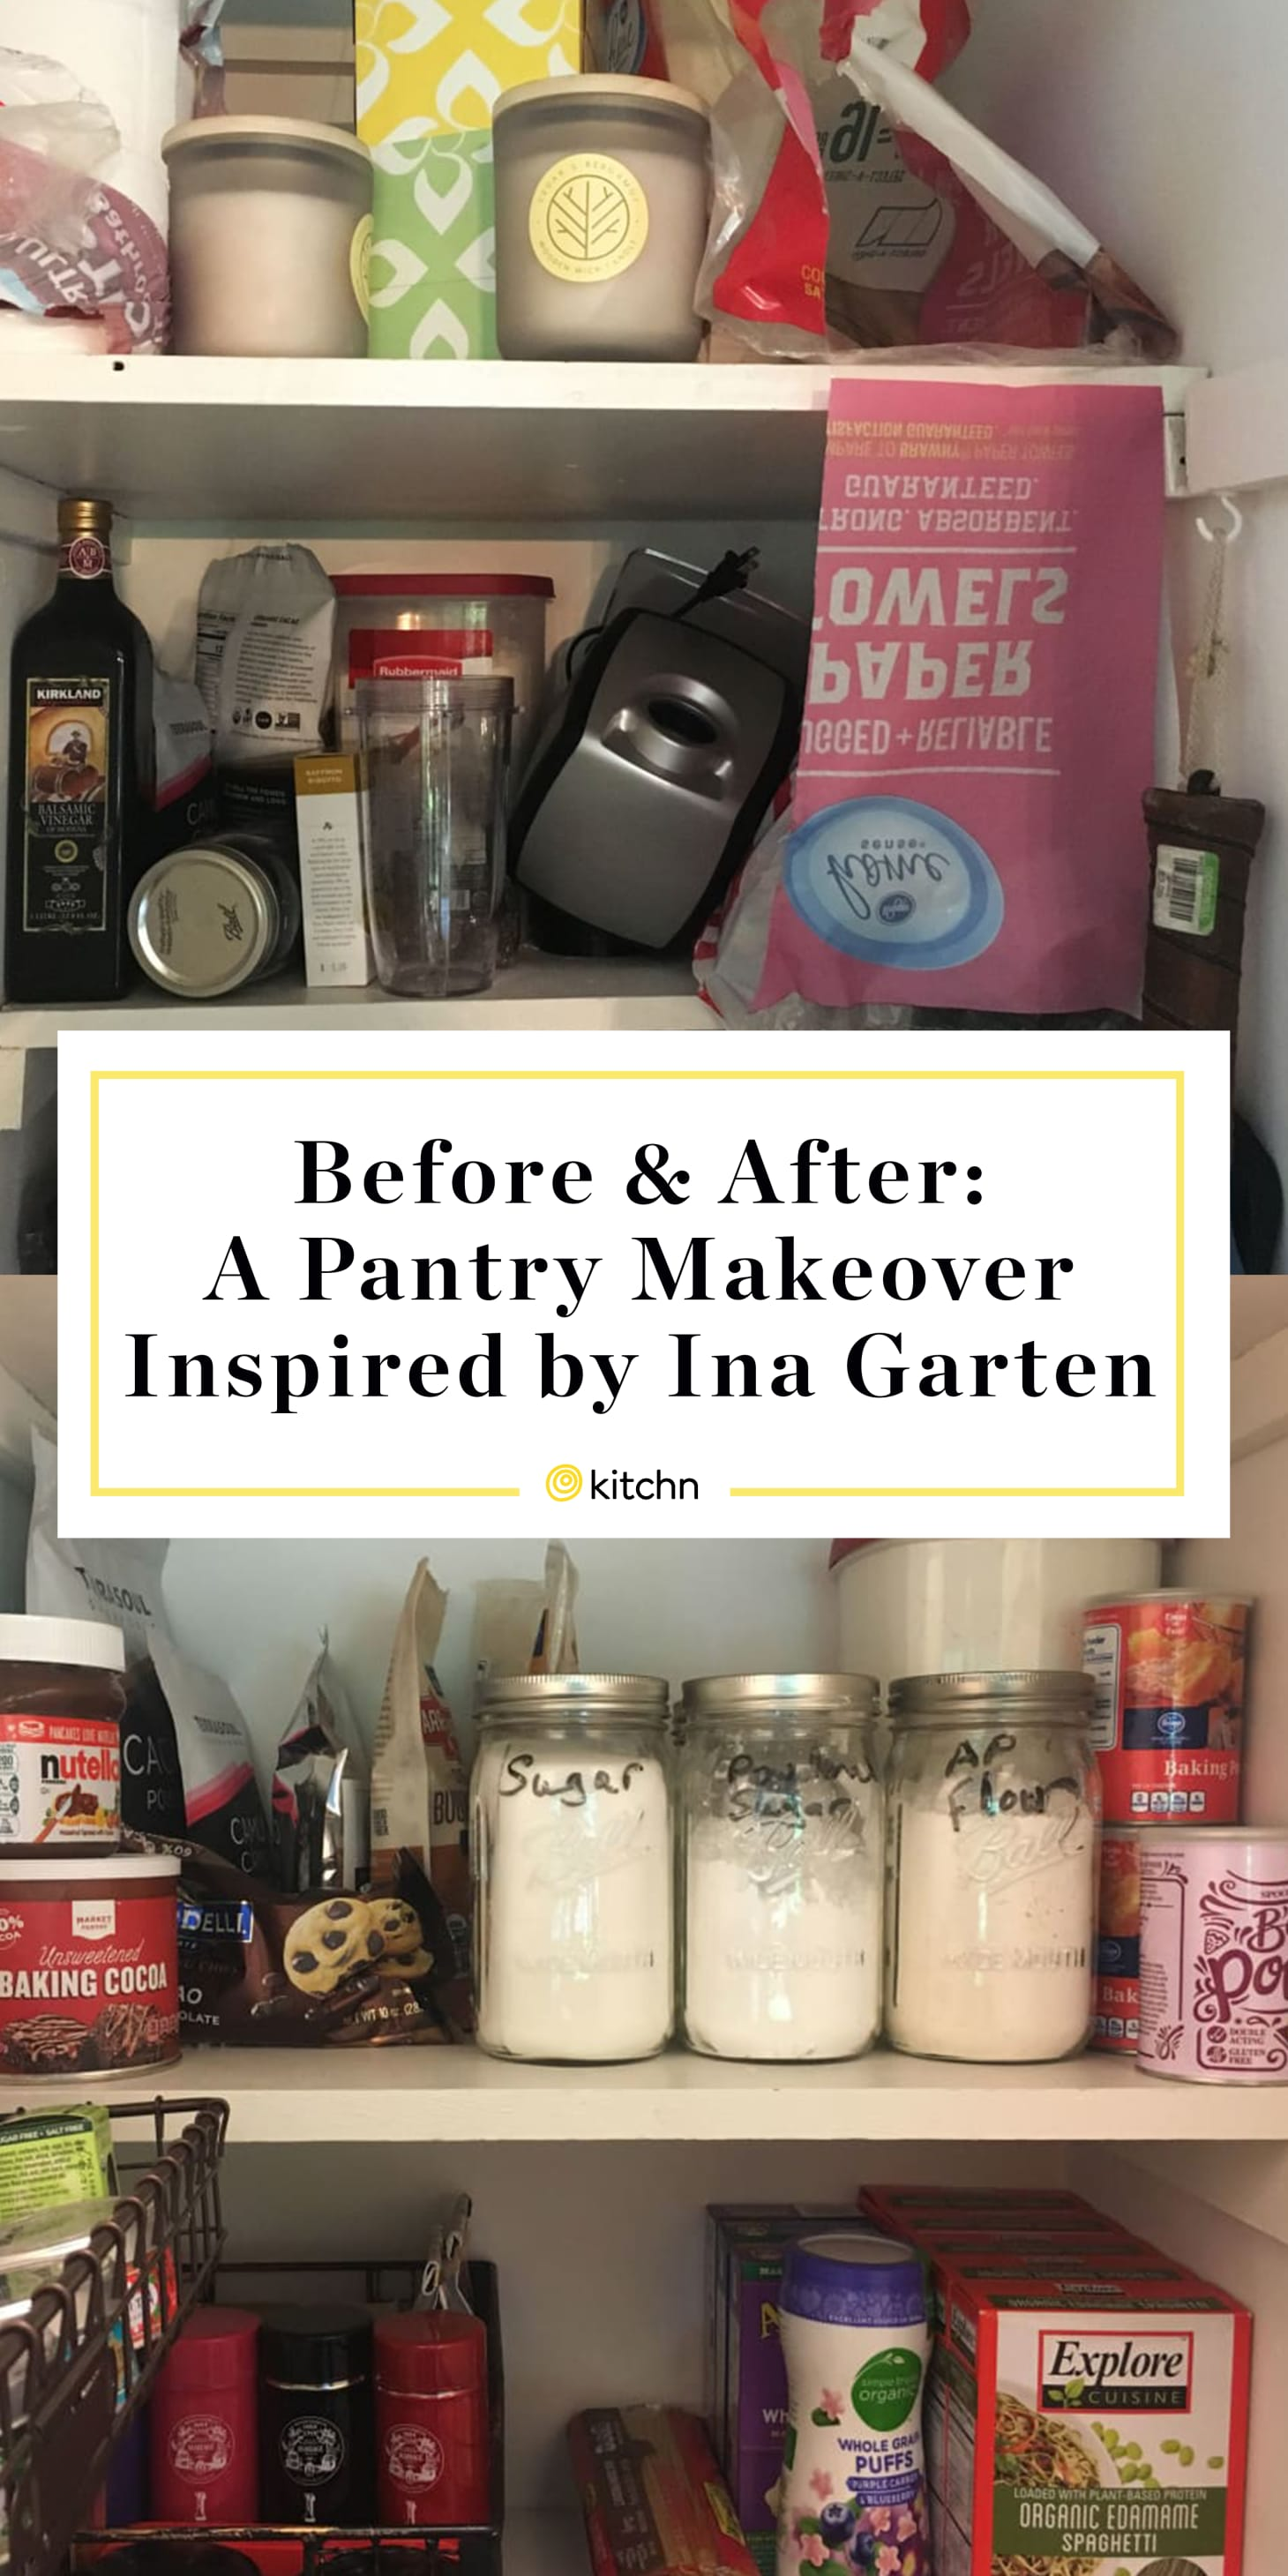 An Ina Garten-Inspired Pantry Makeover | Kitchn